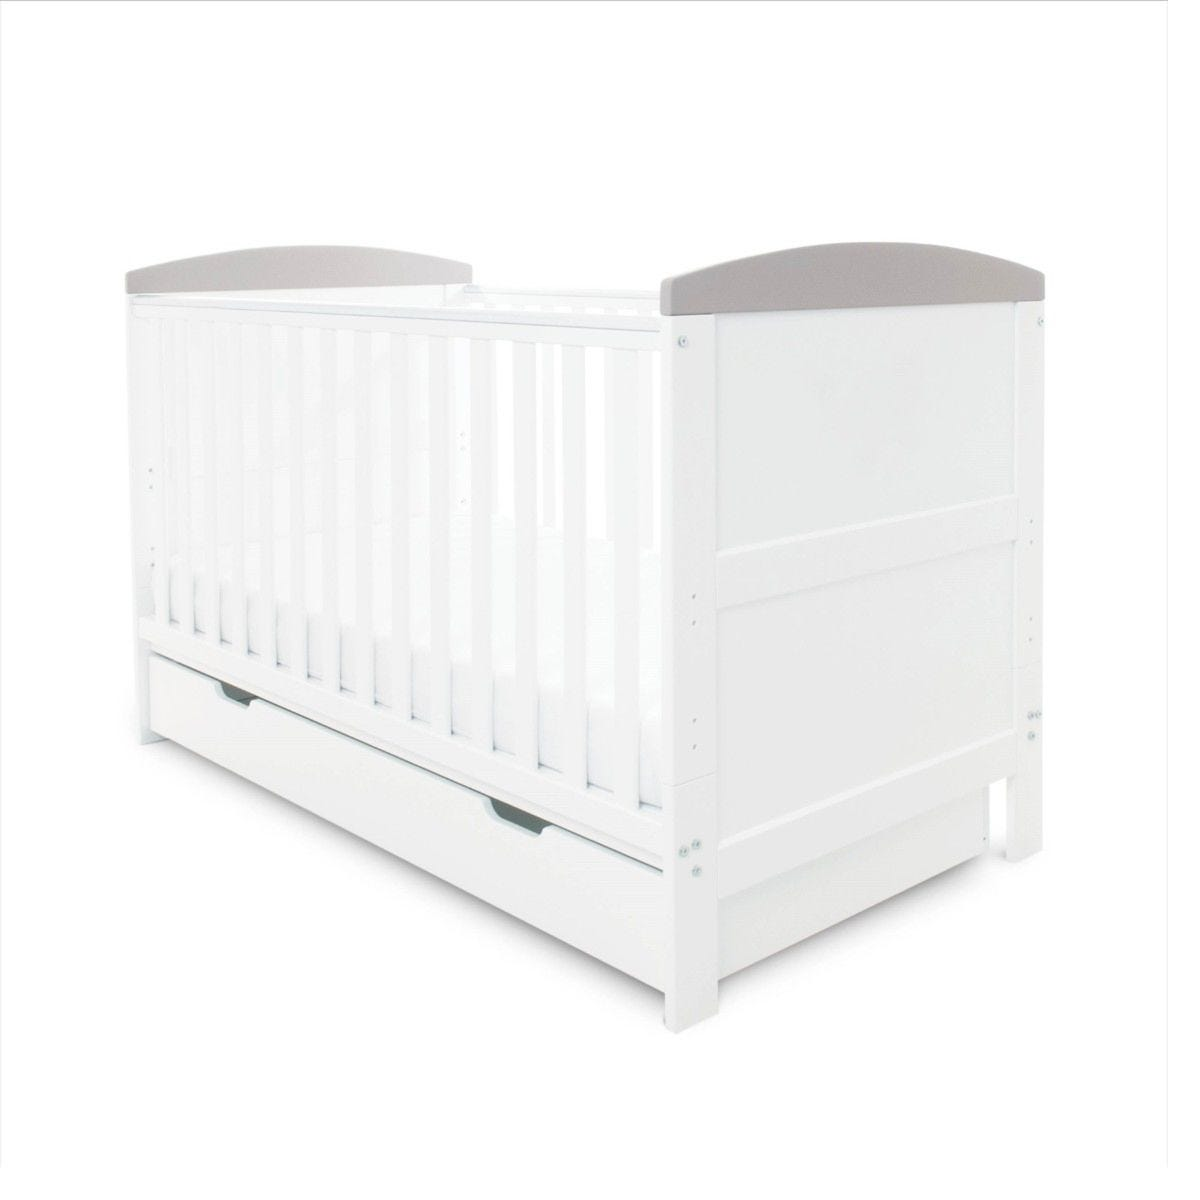 Ickle Bubba Coleby Classic Cot Bed And Under Drawer White with Grey Trim